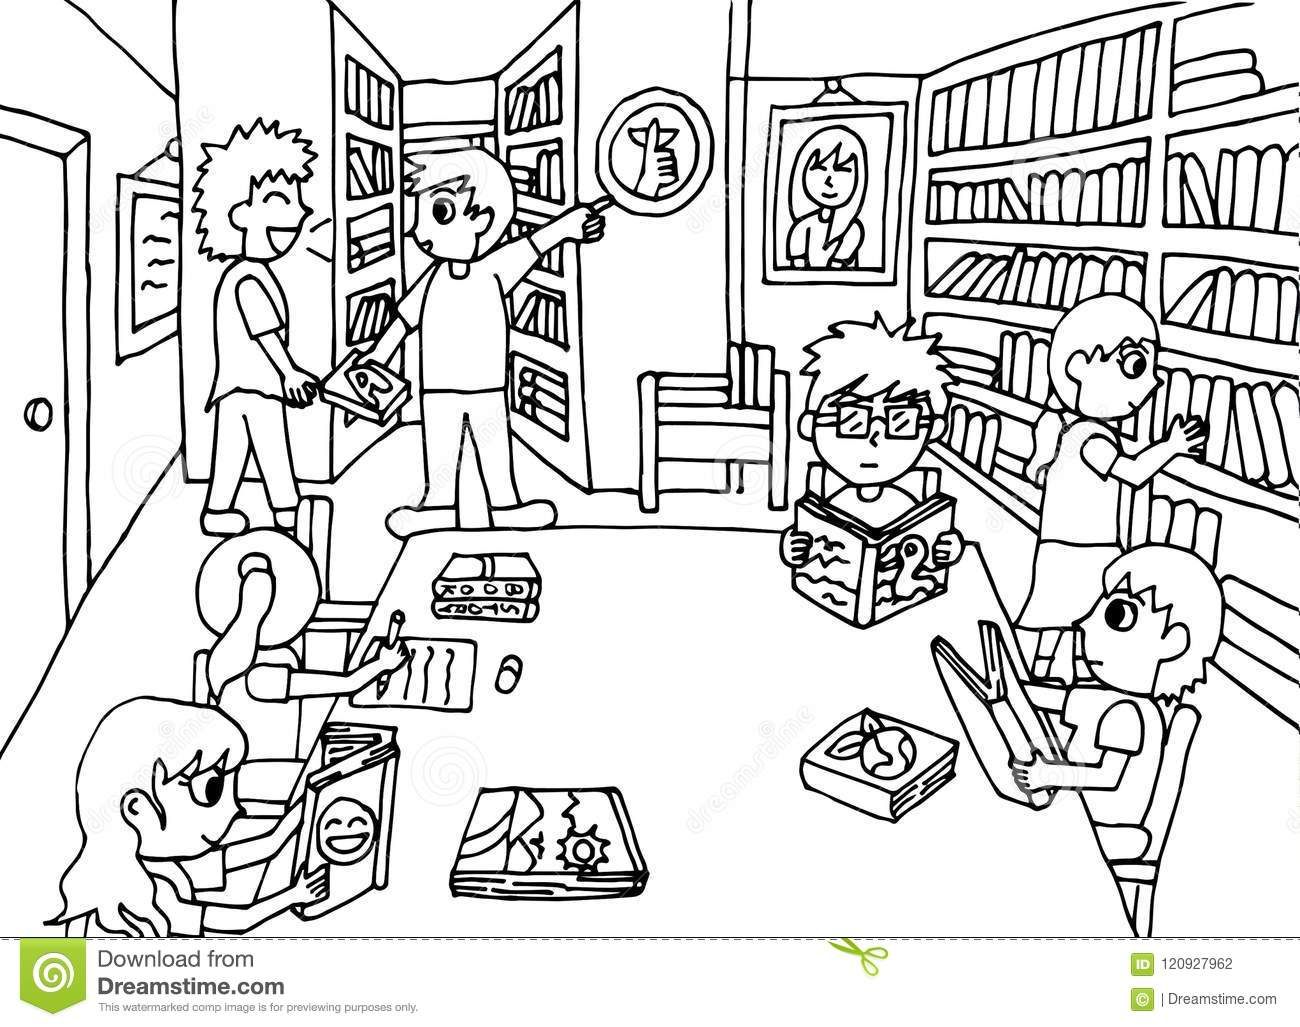 Keep quiet in the library stock illustration. Illustration